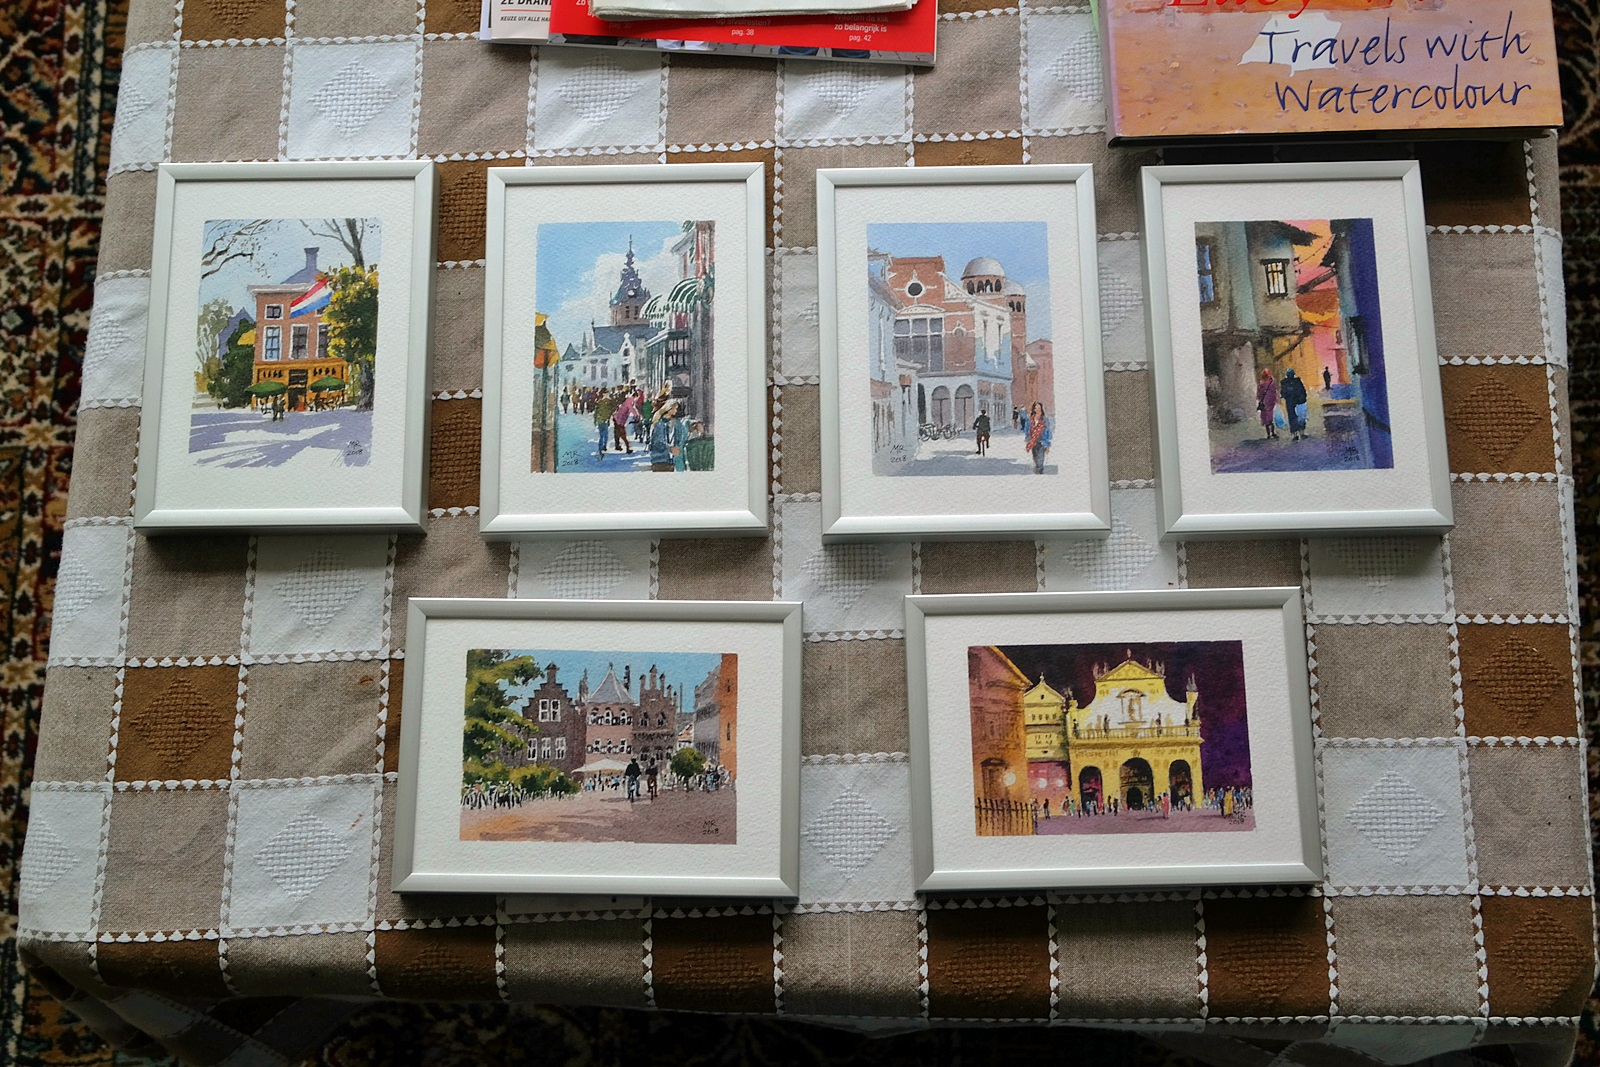 Visitekaartjes - all six framed